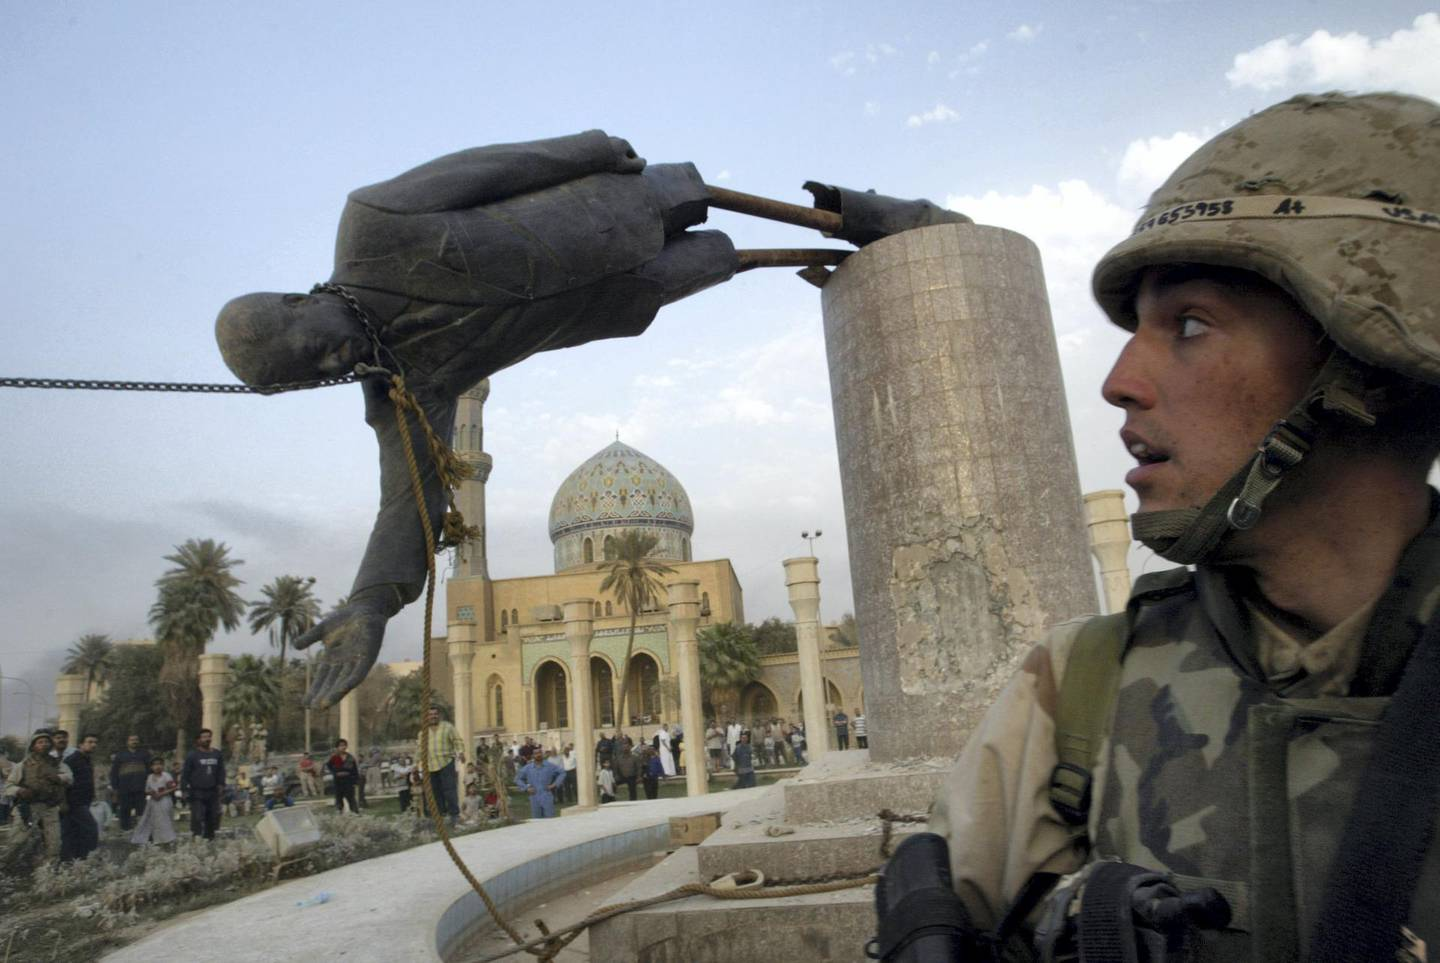 A U.S. soldier watches as a statue of Iraq's President Saddam Hussein falls in central Baghdad in this April 9, 2003 file photo. REUTERS/Goran Tomasevic  AS/CRB